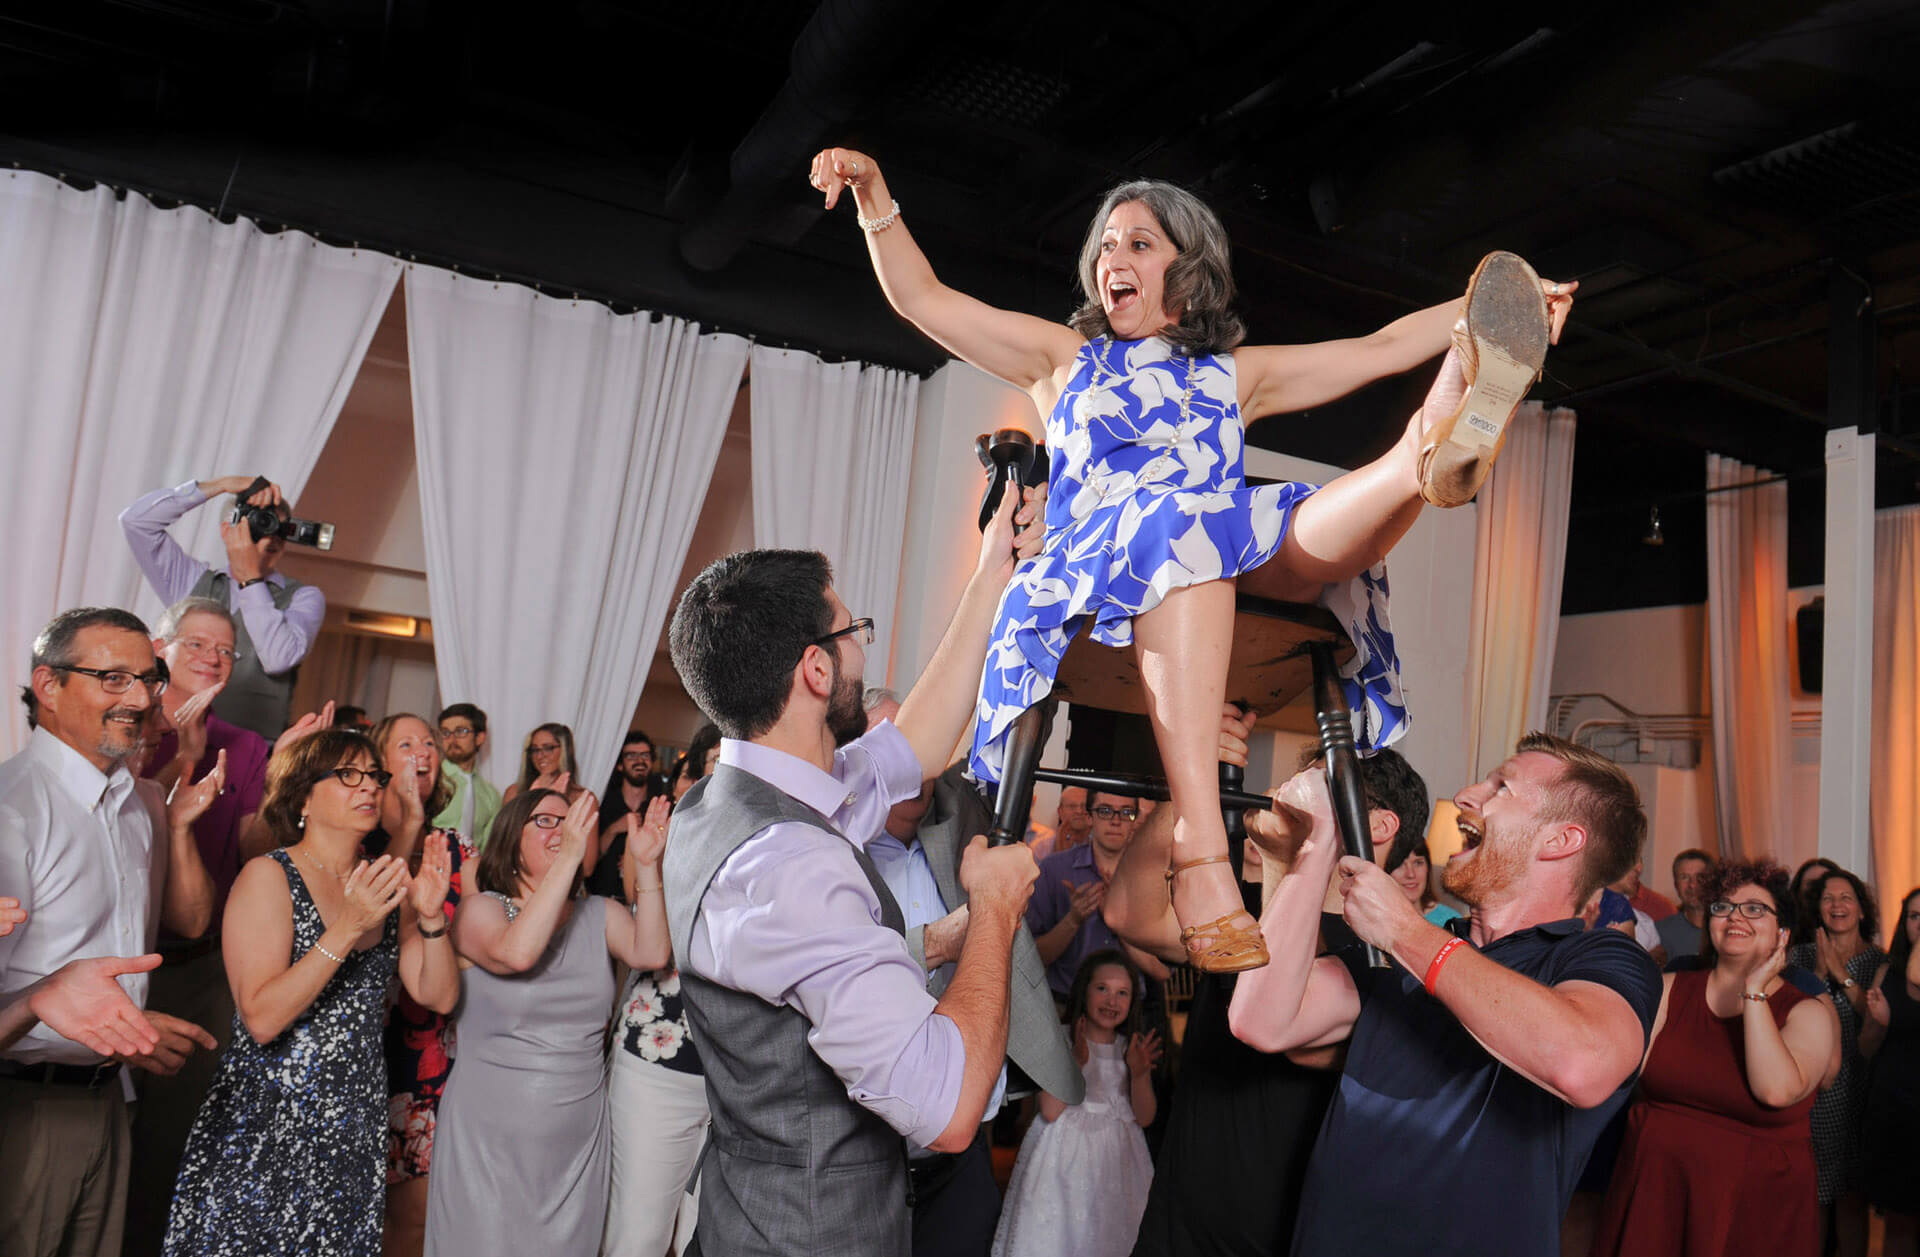 The mother of the groom indicates that she'd like to be put down immediately during the Hora at a Jewish wedding in Ferndale, Michigan.